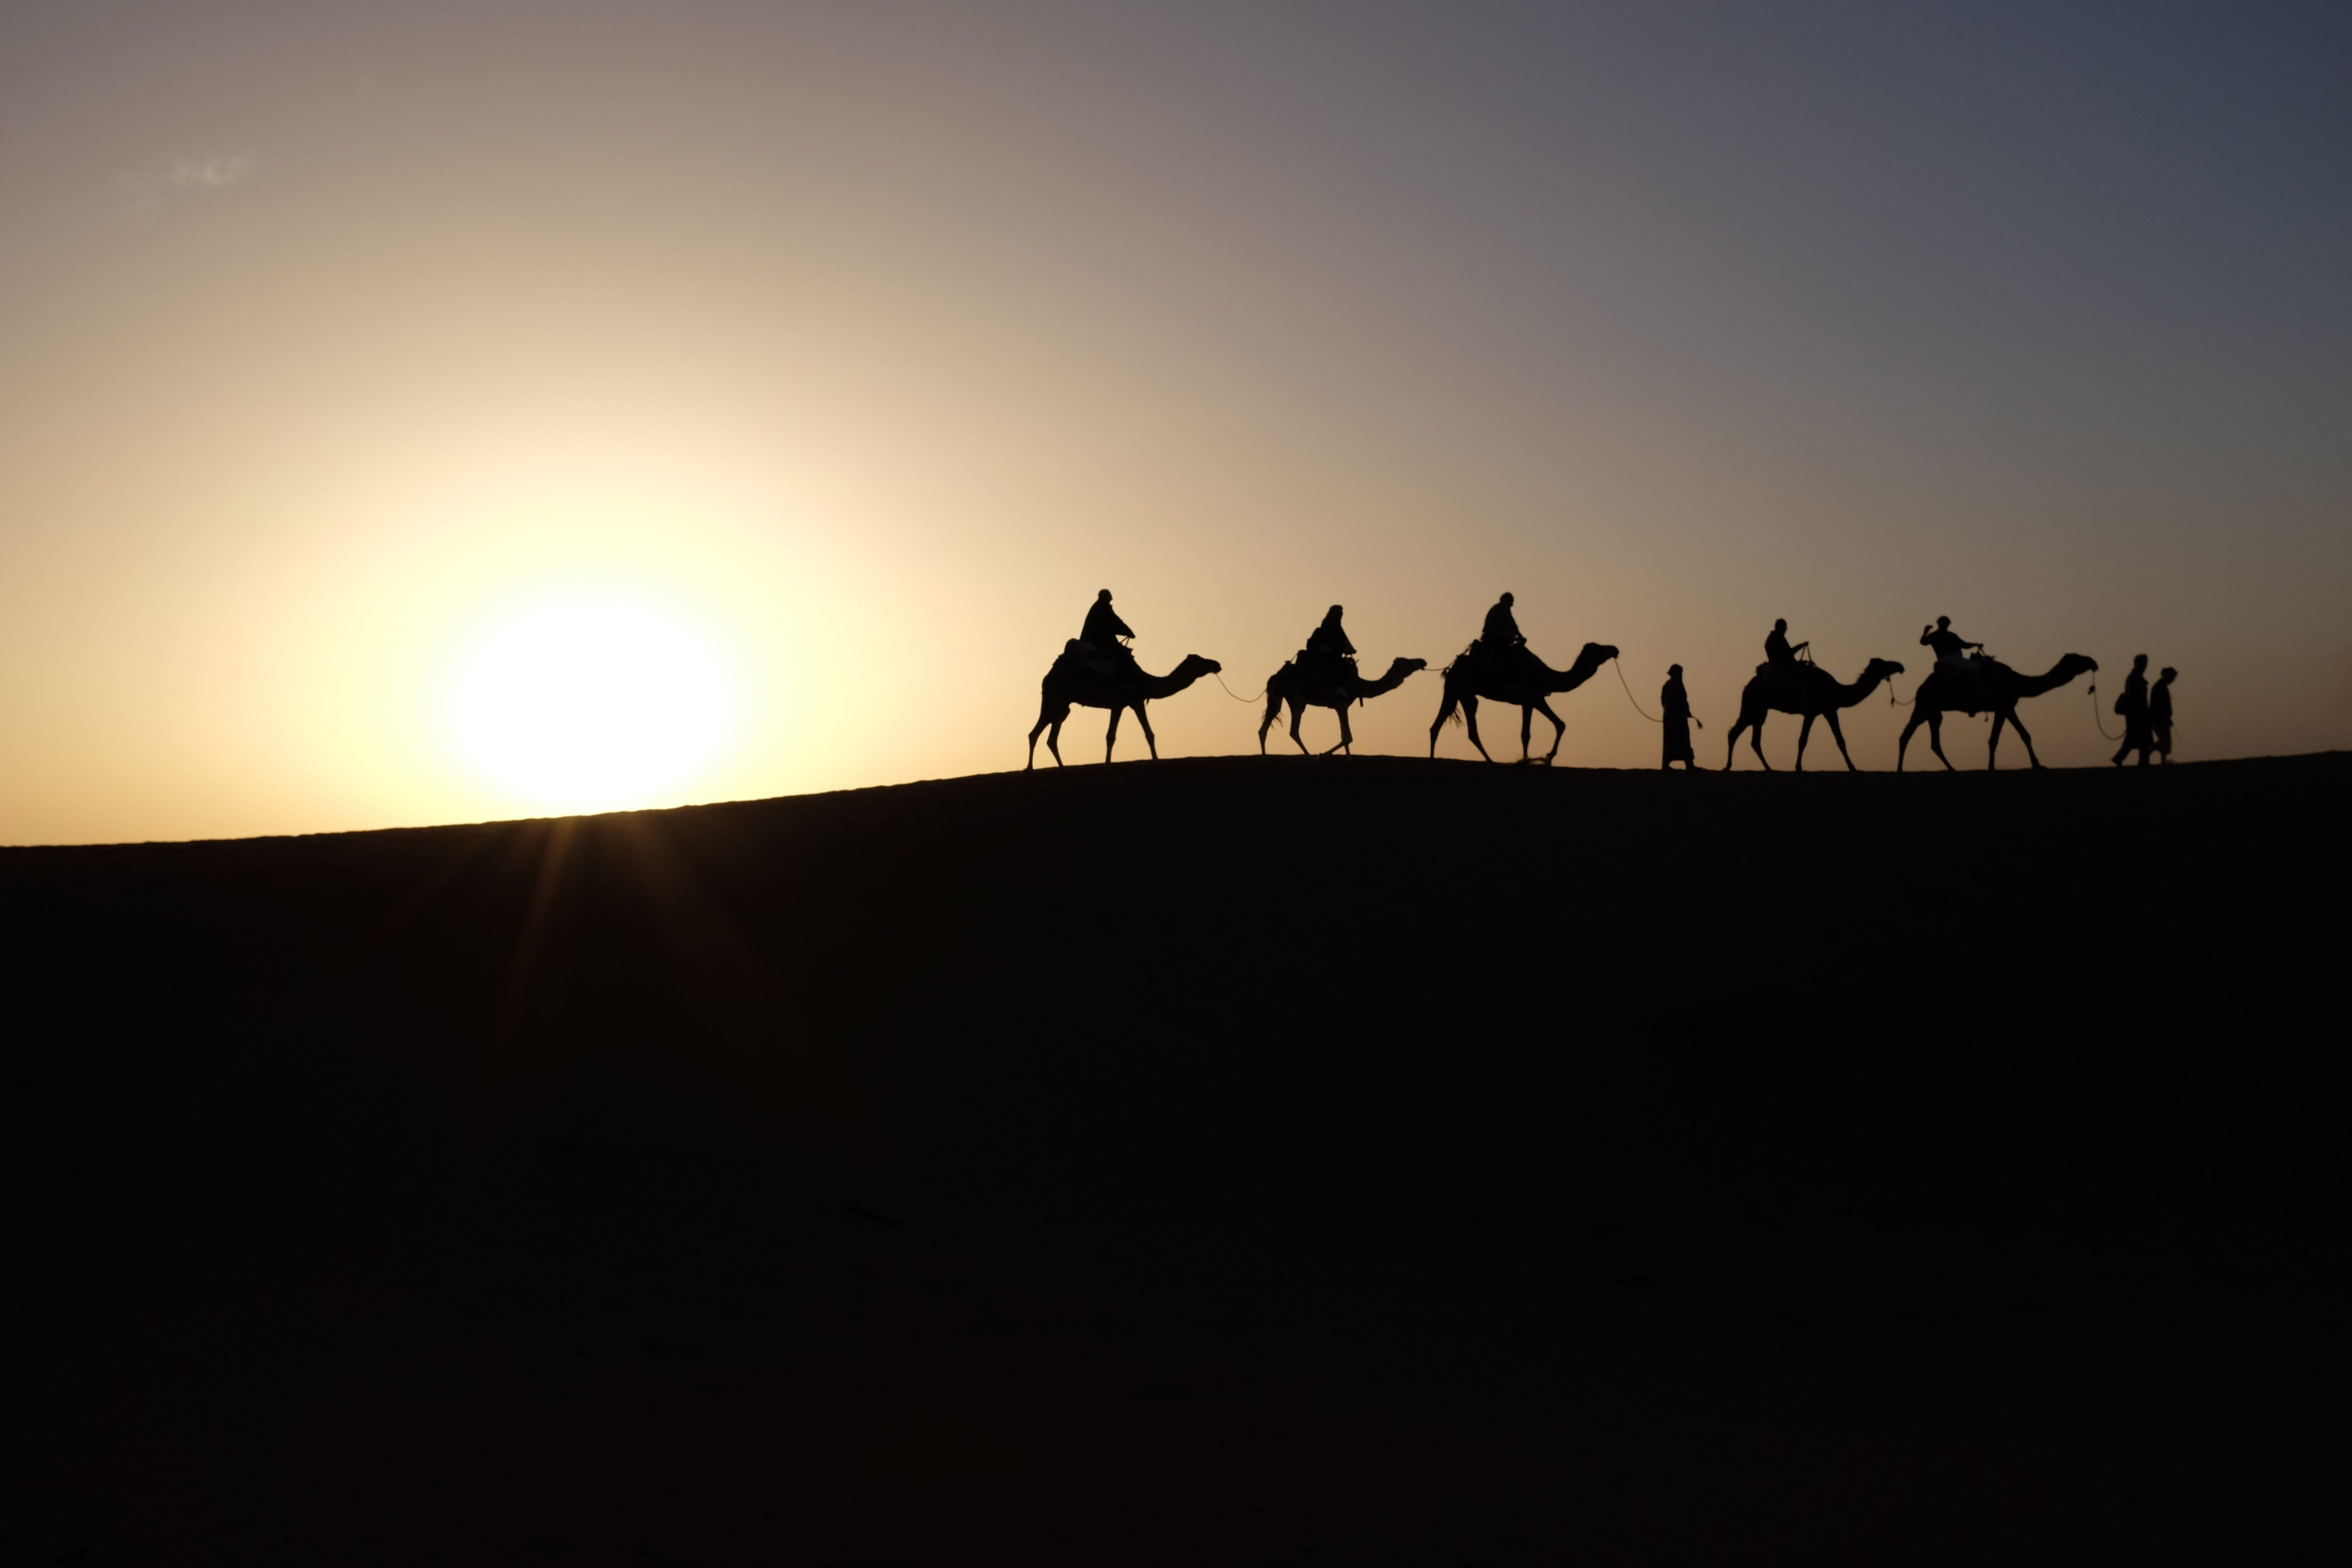 camels-in-silhouette